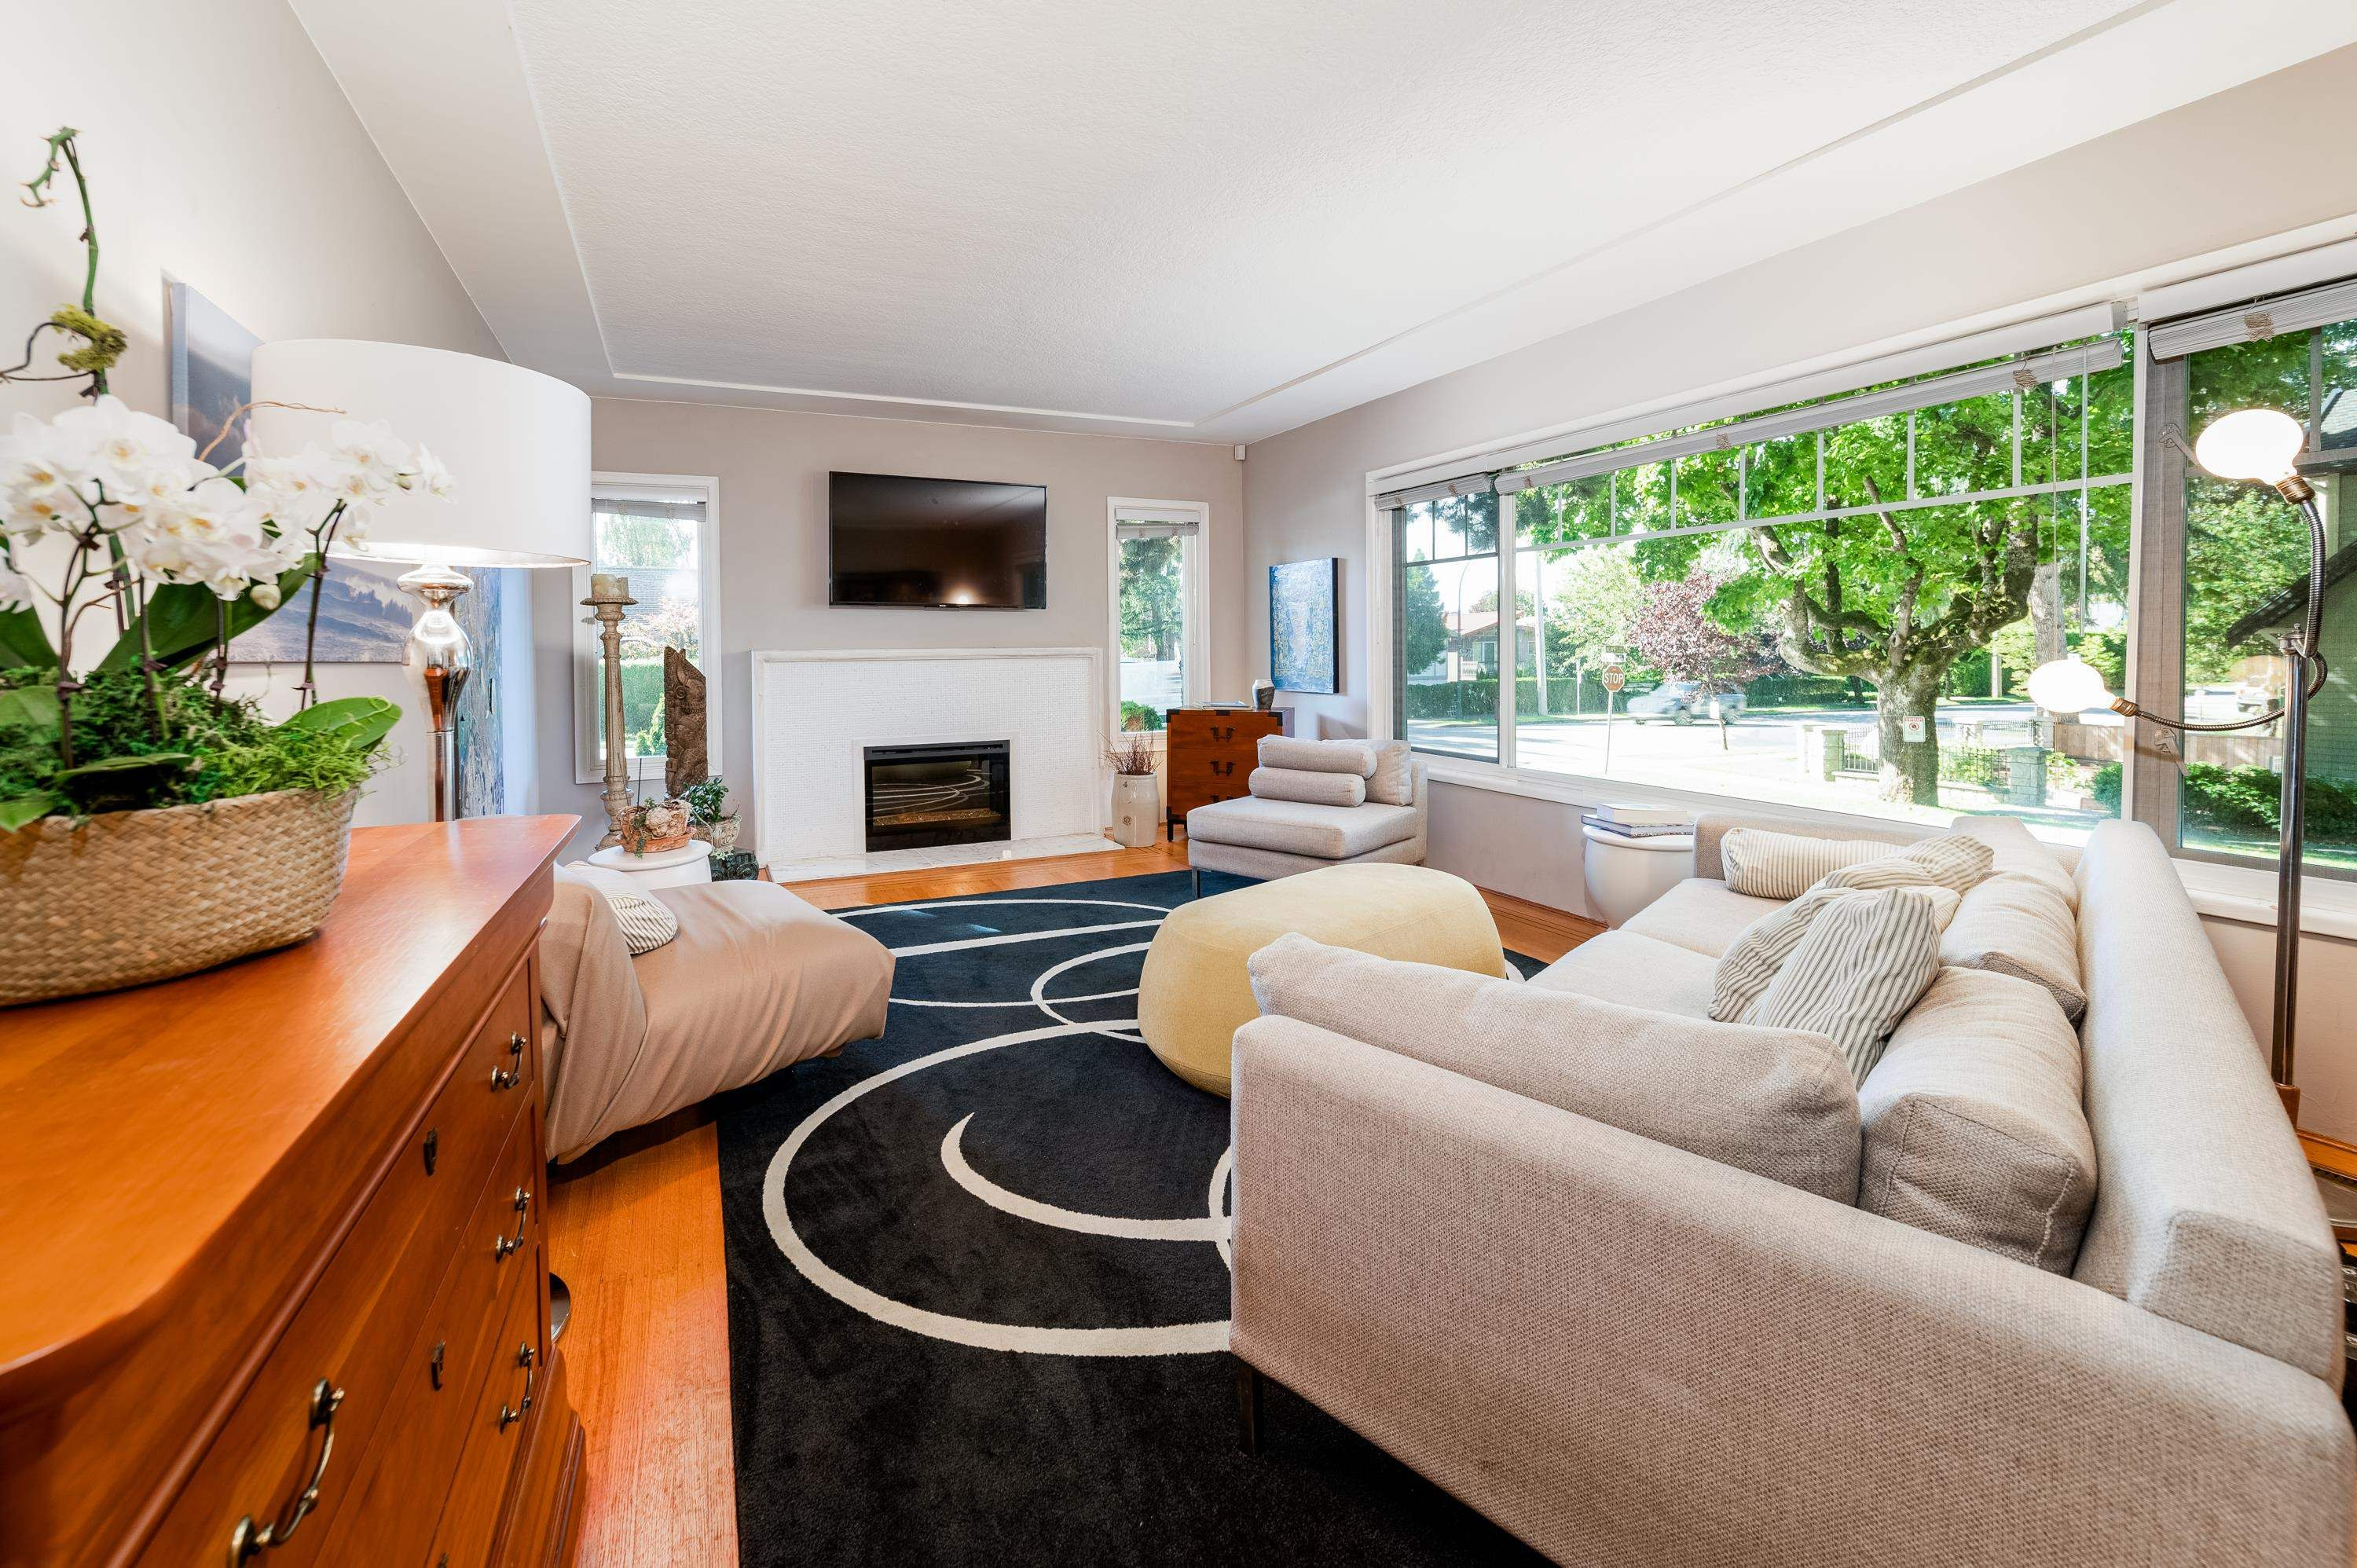 Main Photo: 6486 YEW Street in Vancouver: Kerrisdale House for sale (Vancouver West)  : MLS®# R2620297